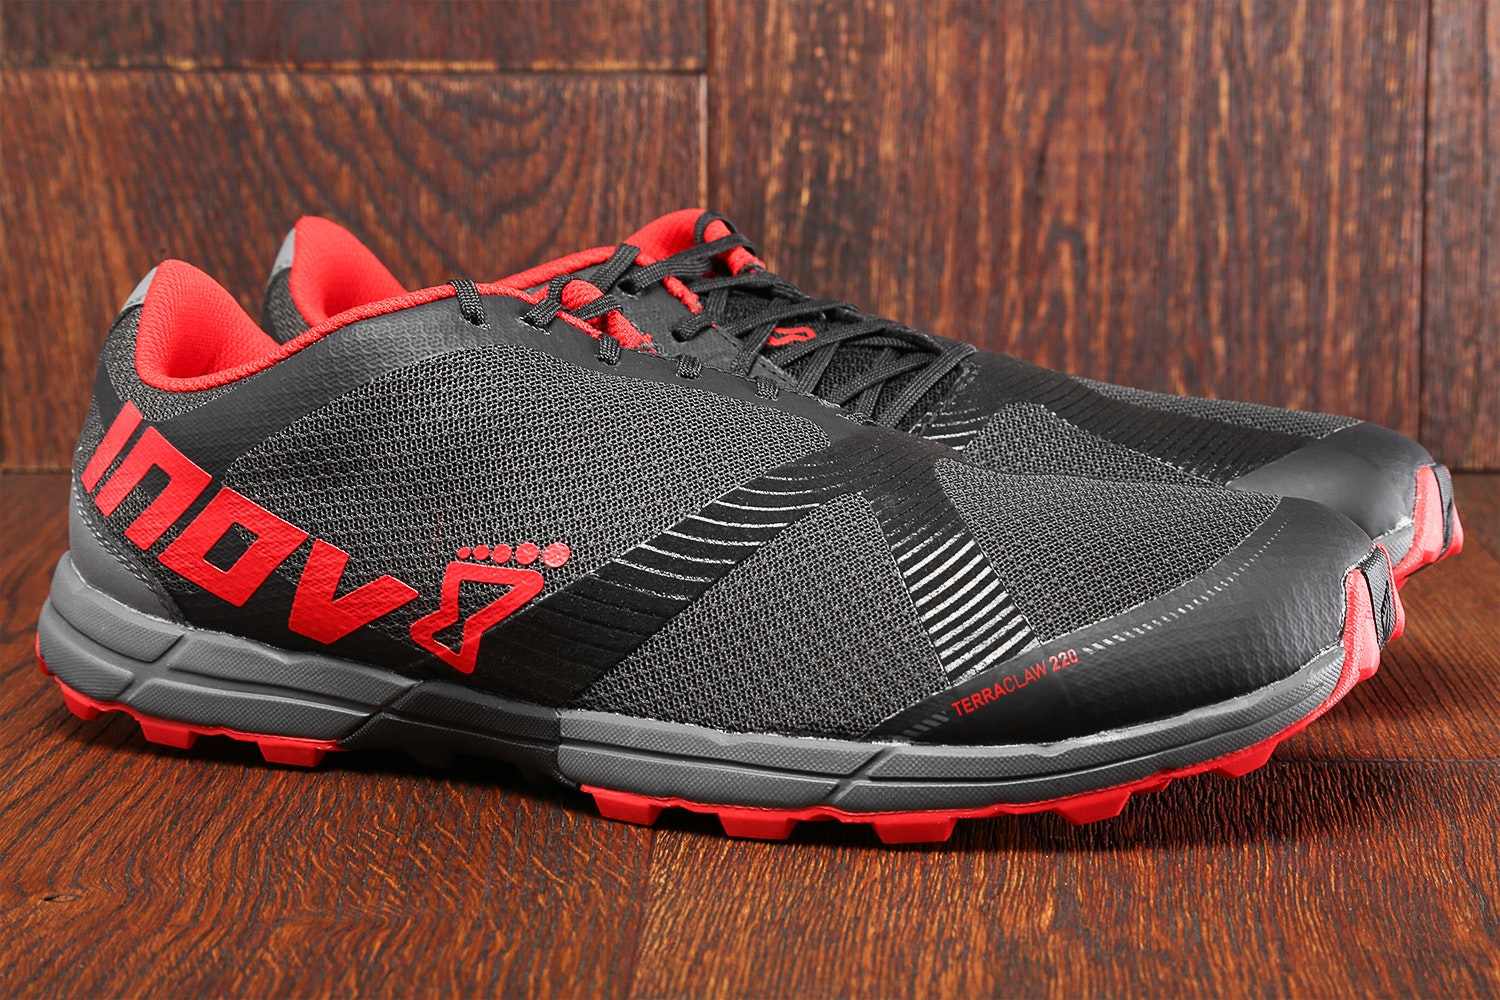 Inov-8 Terraclaw 220 Closeout